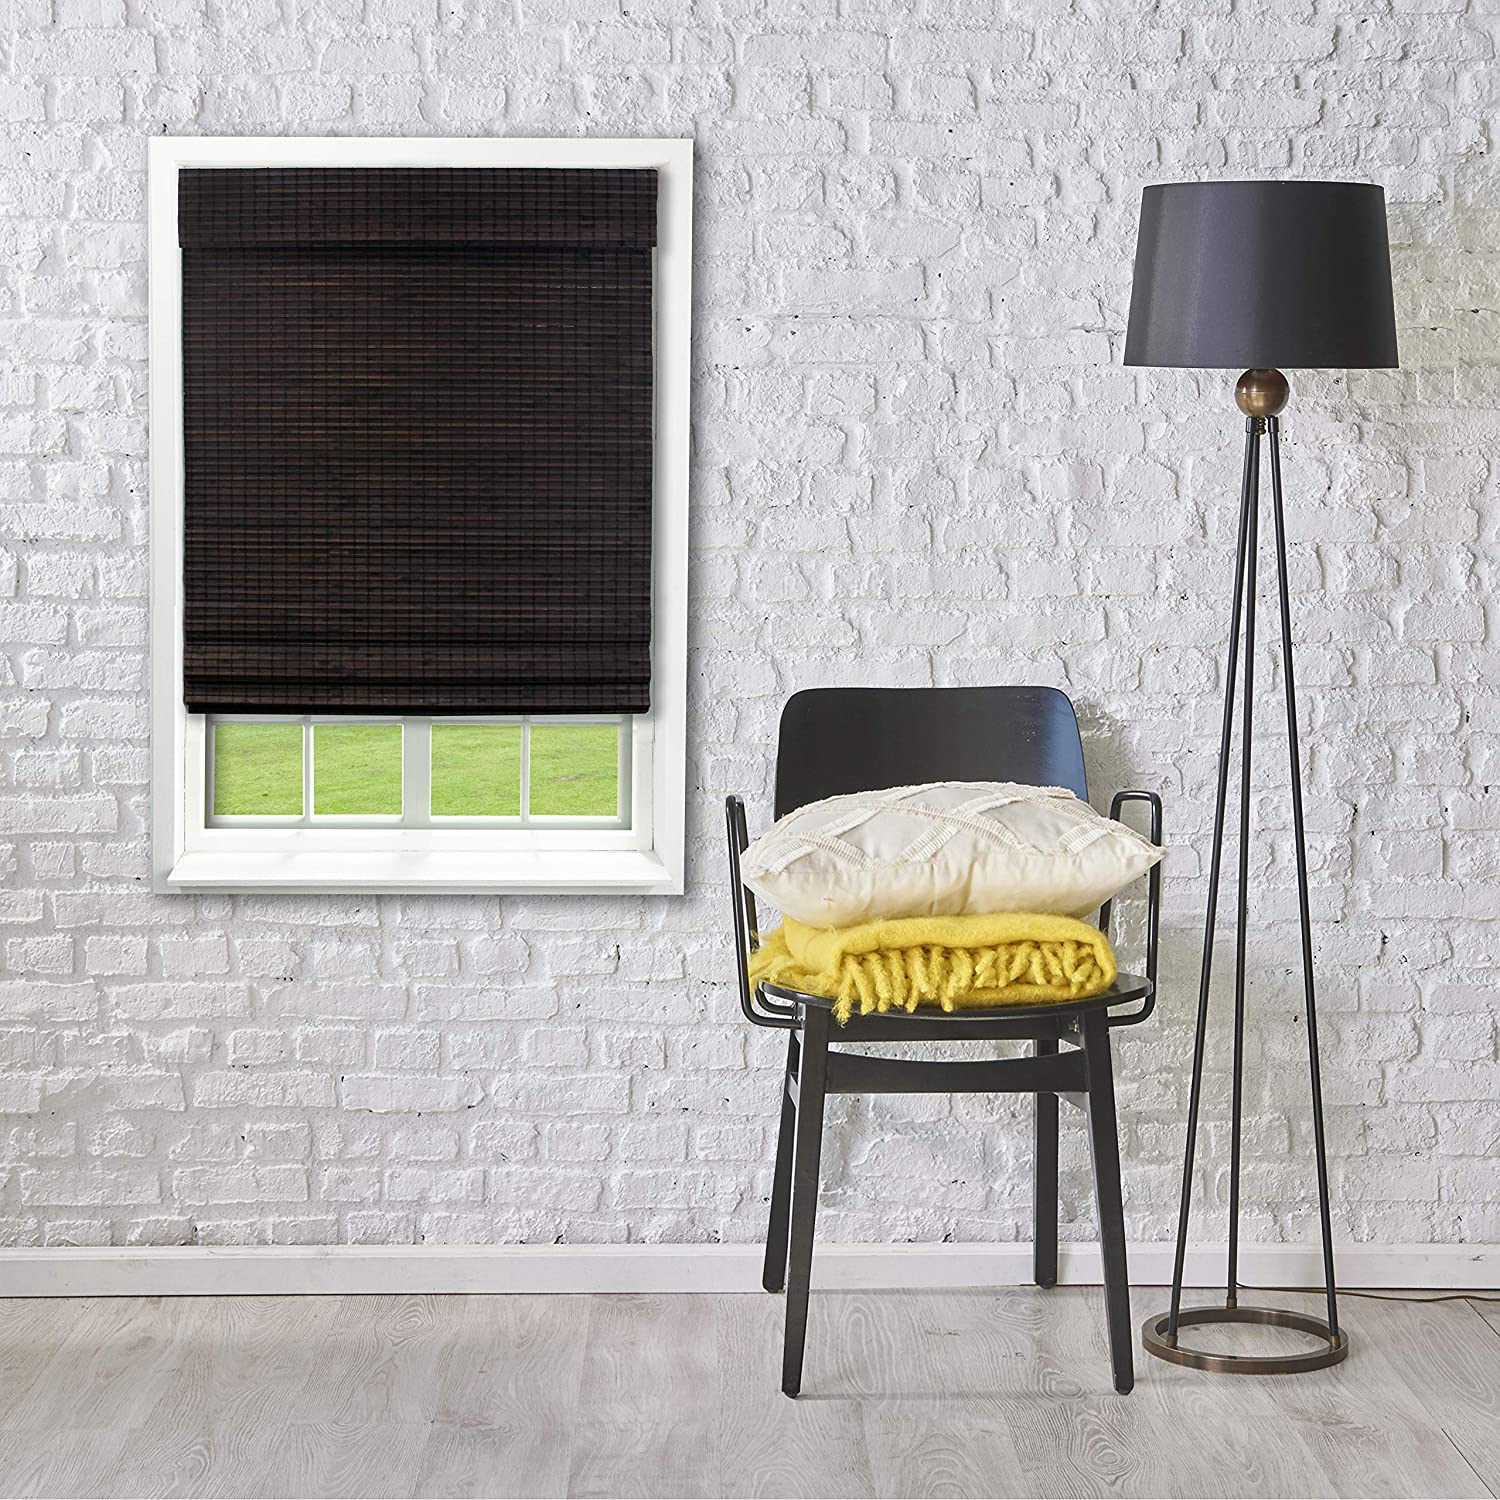 Lewis Hyman Radiance Cordless Bamboo Privacy Weave Roman Shade, 27 x 48 in, Espresso